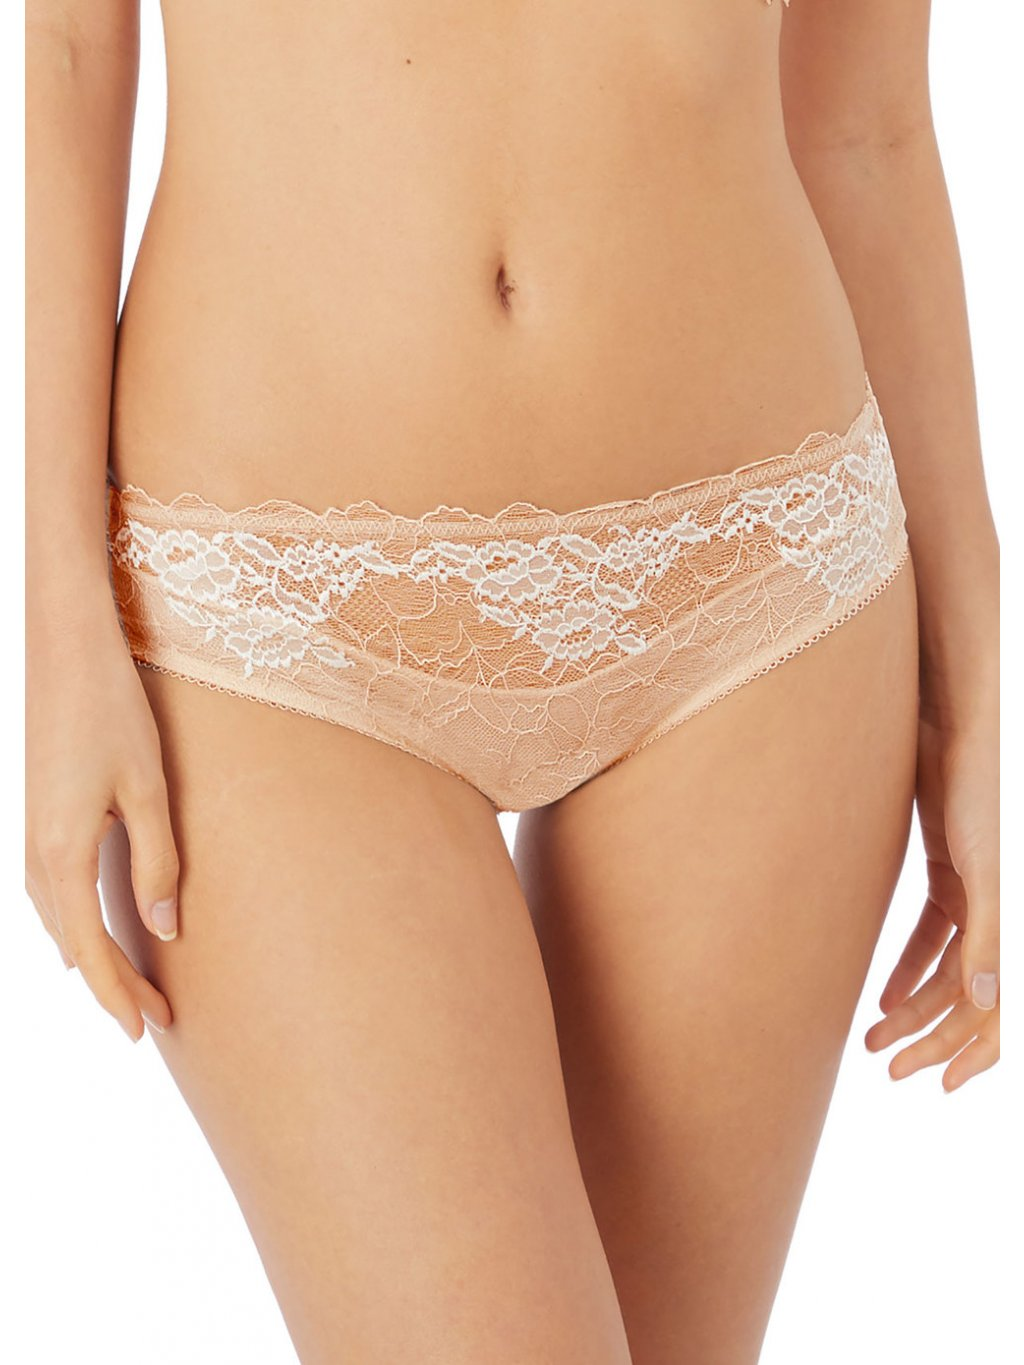 WE135005 CAC primary Wacoal Lingerie Lace Perfection Cafe Creme Brief